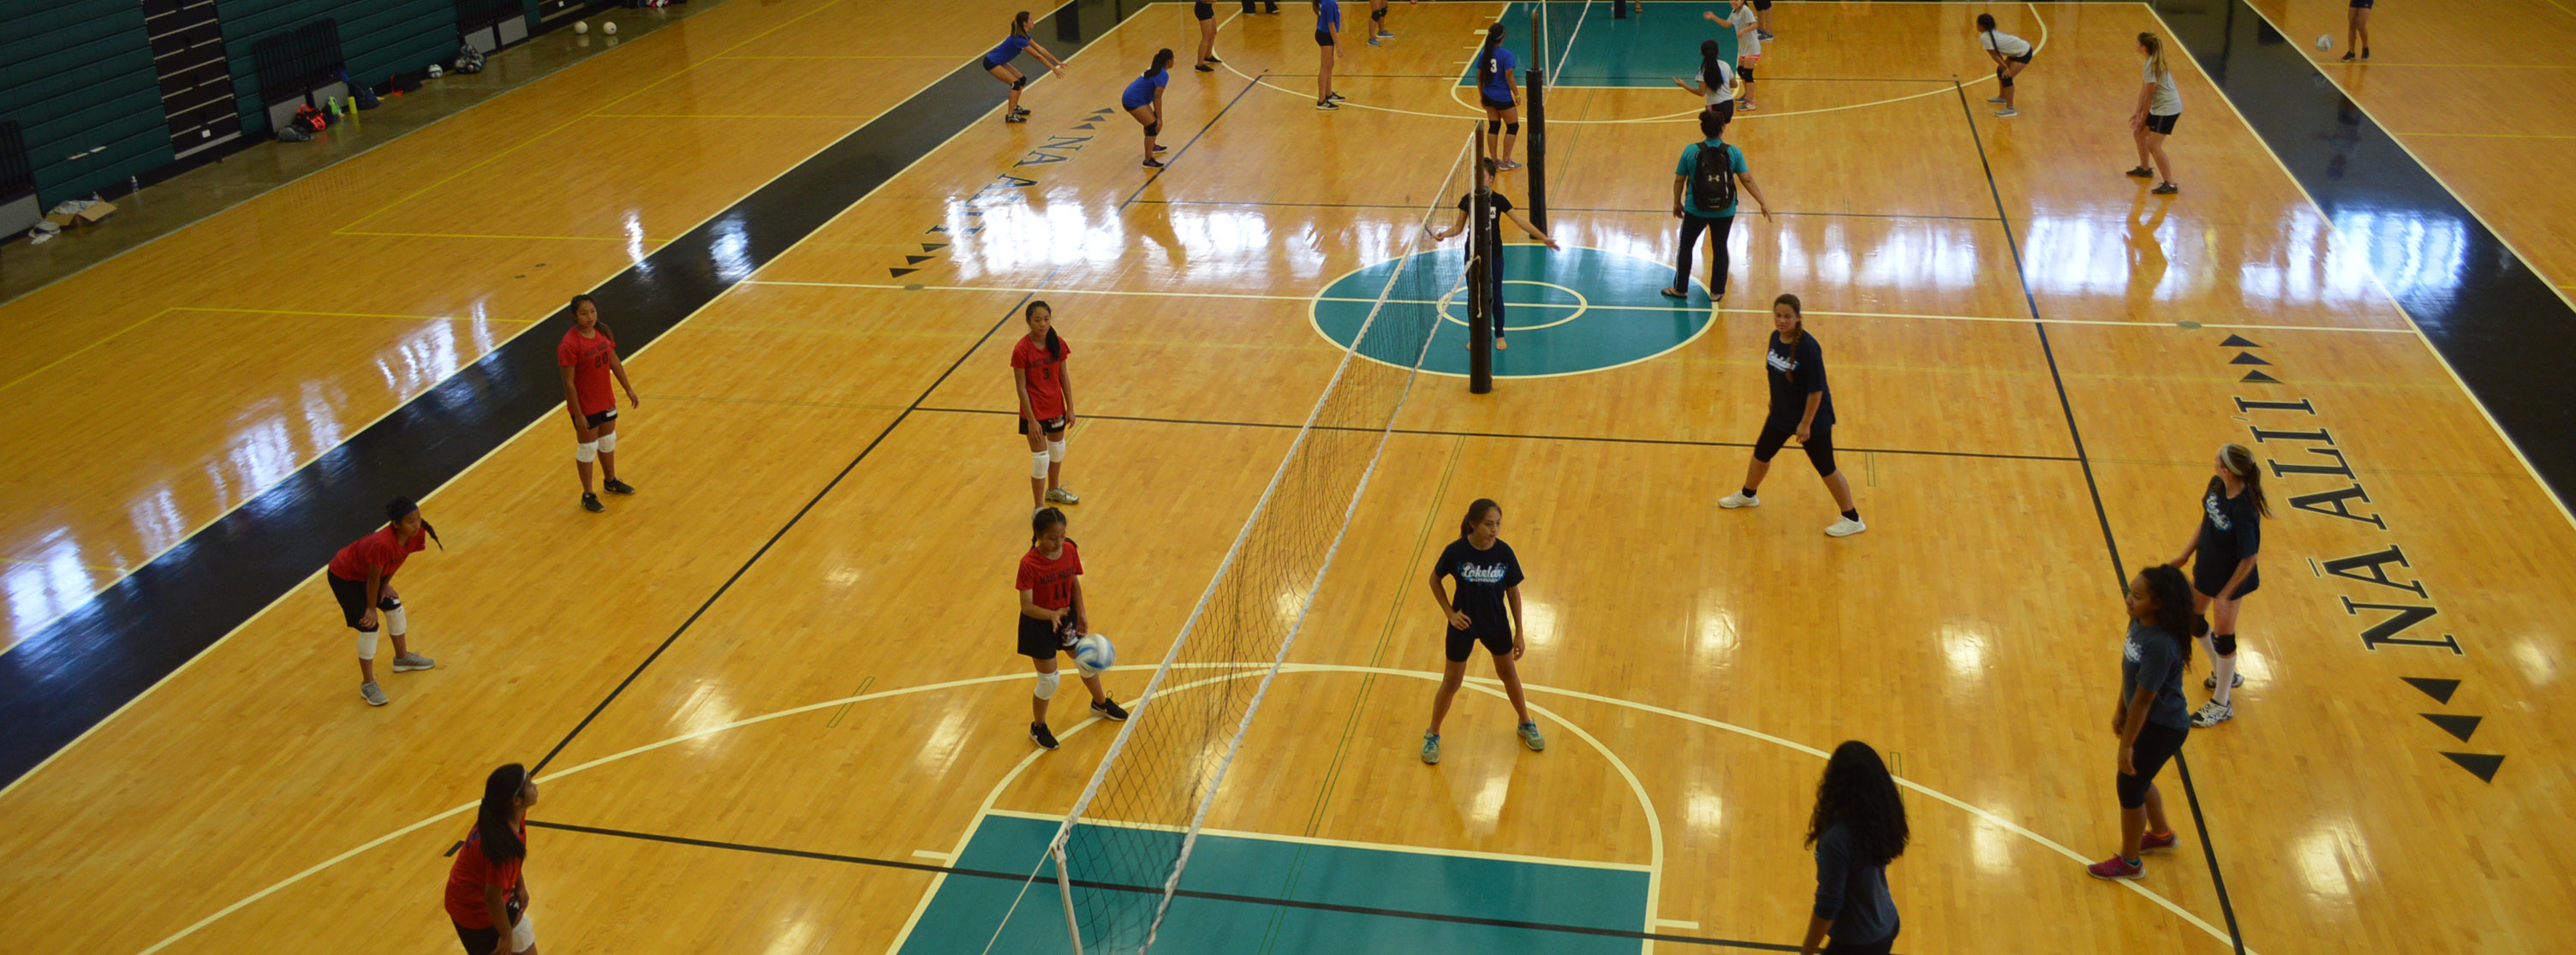 R.E.A.C.H. Volleyball game